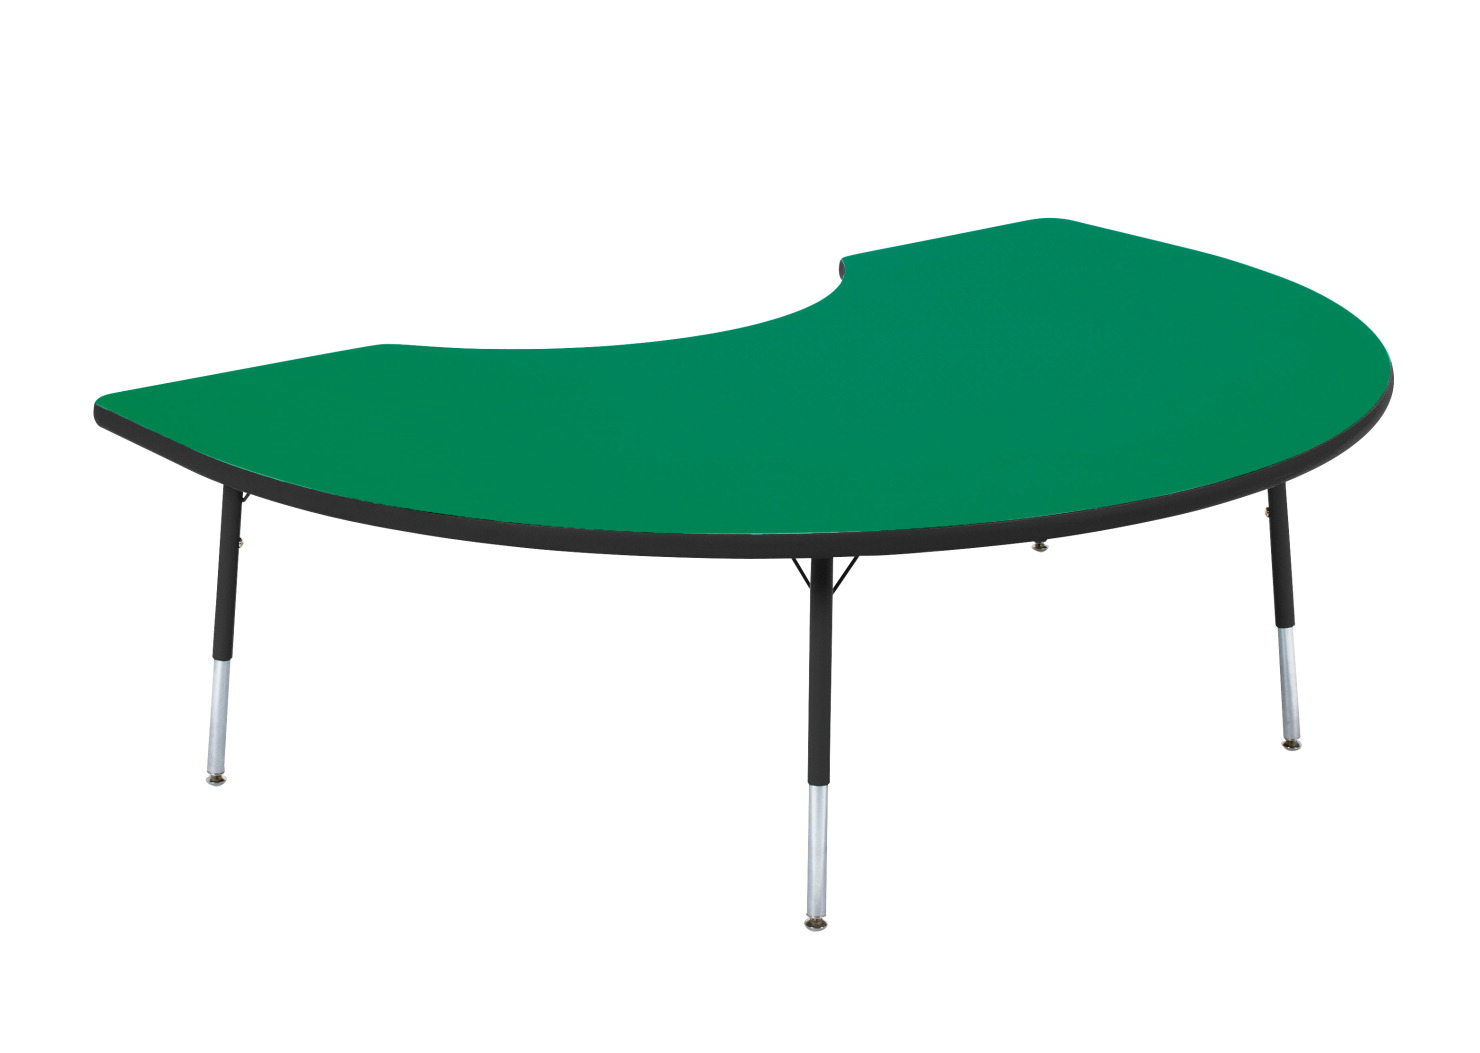 Classroom Select Popular Kidney Activity Table, Adjustable Height, 48 x 72 inches